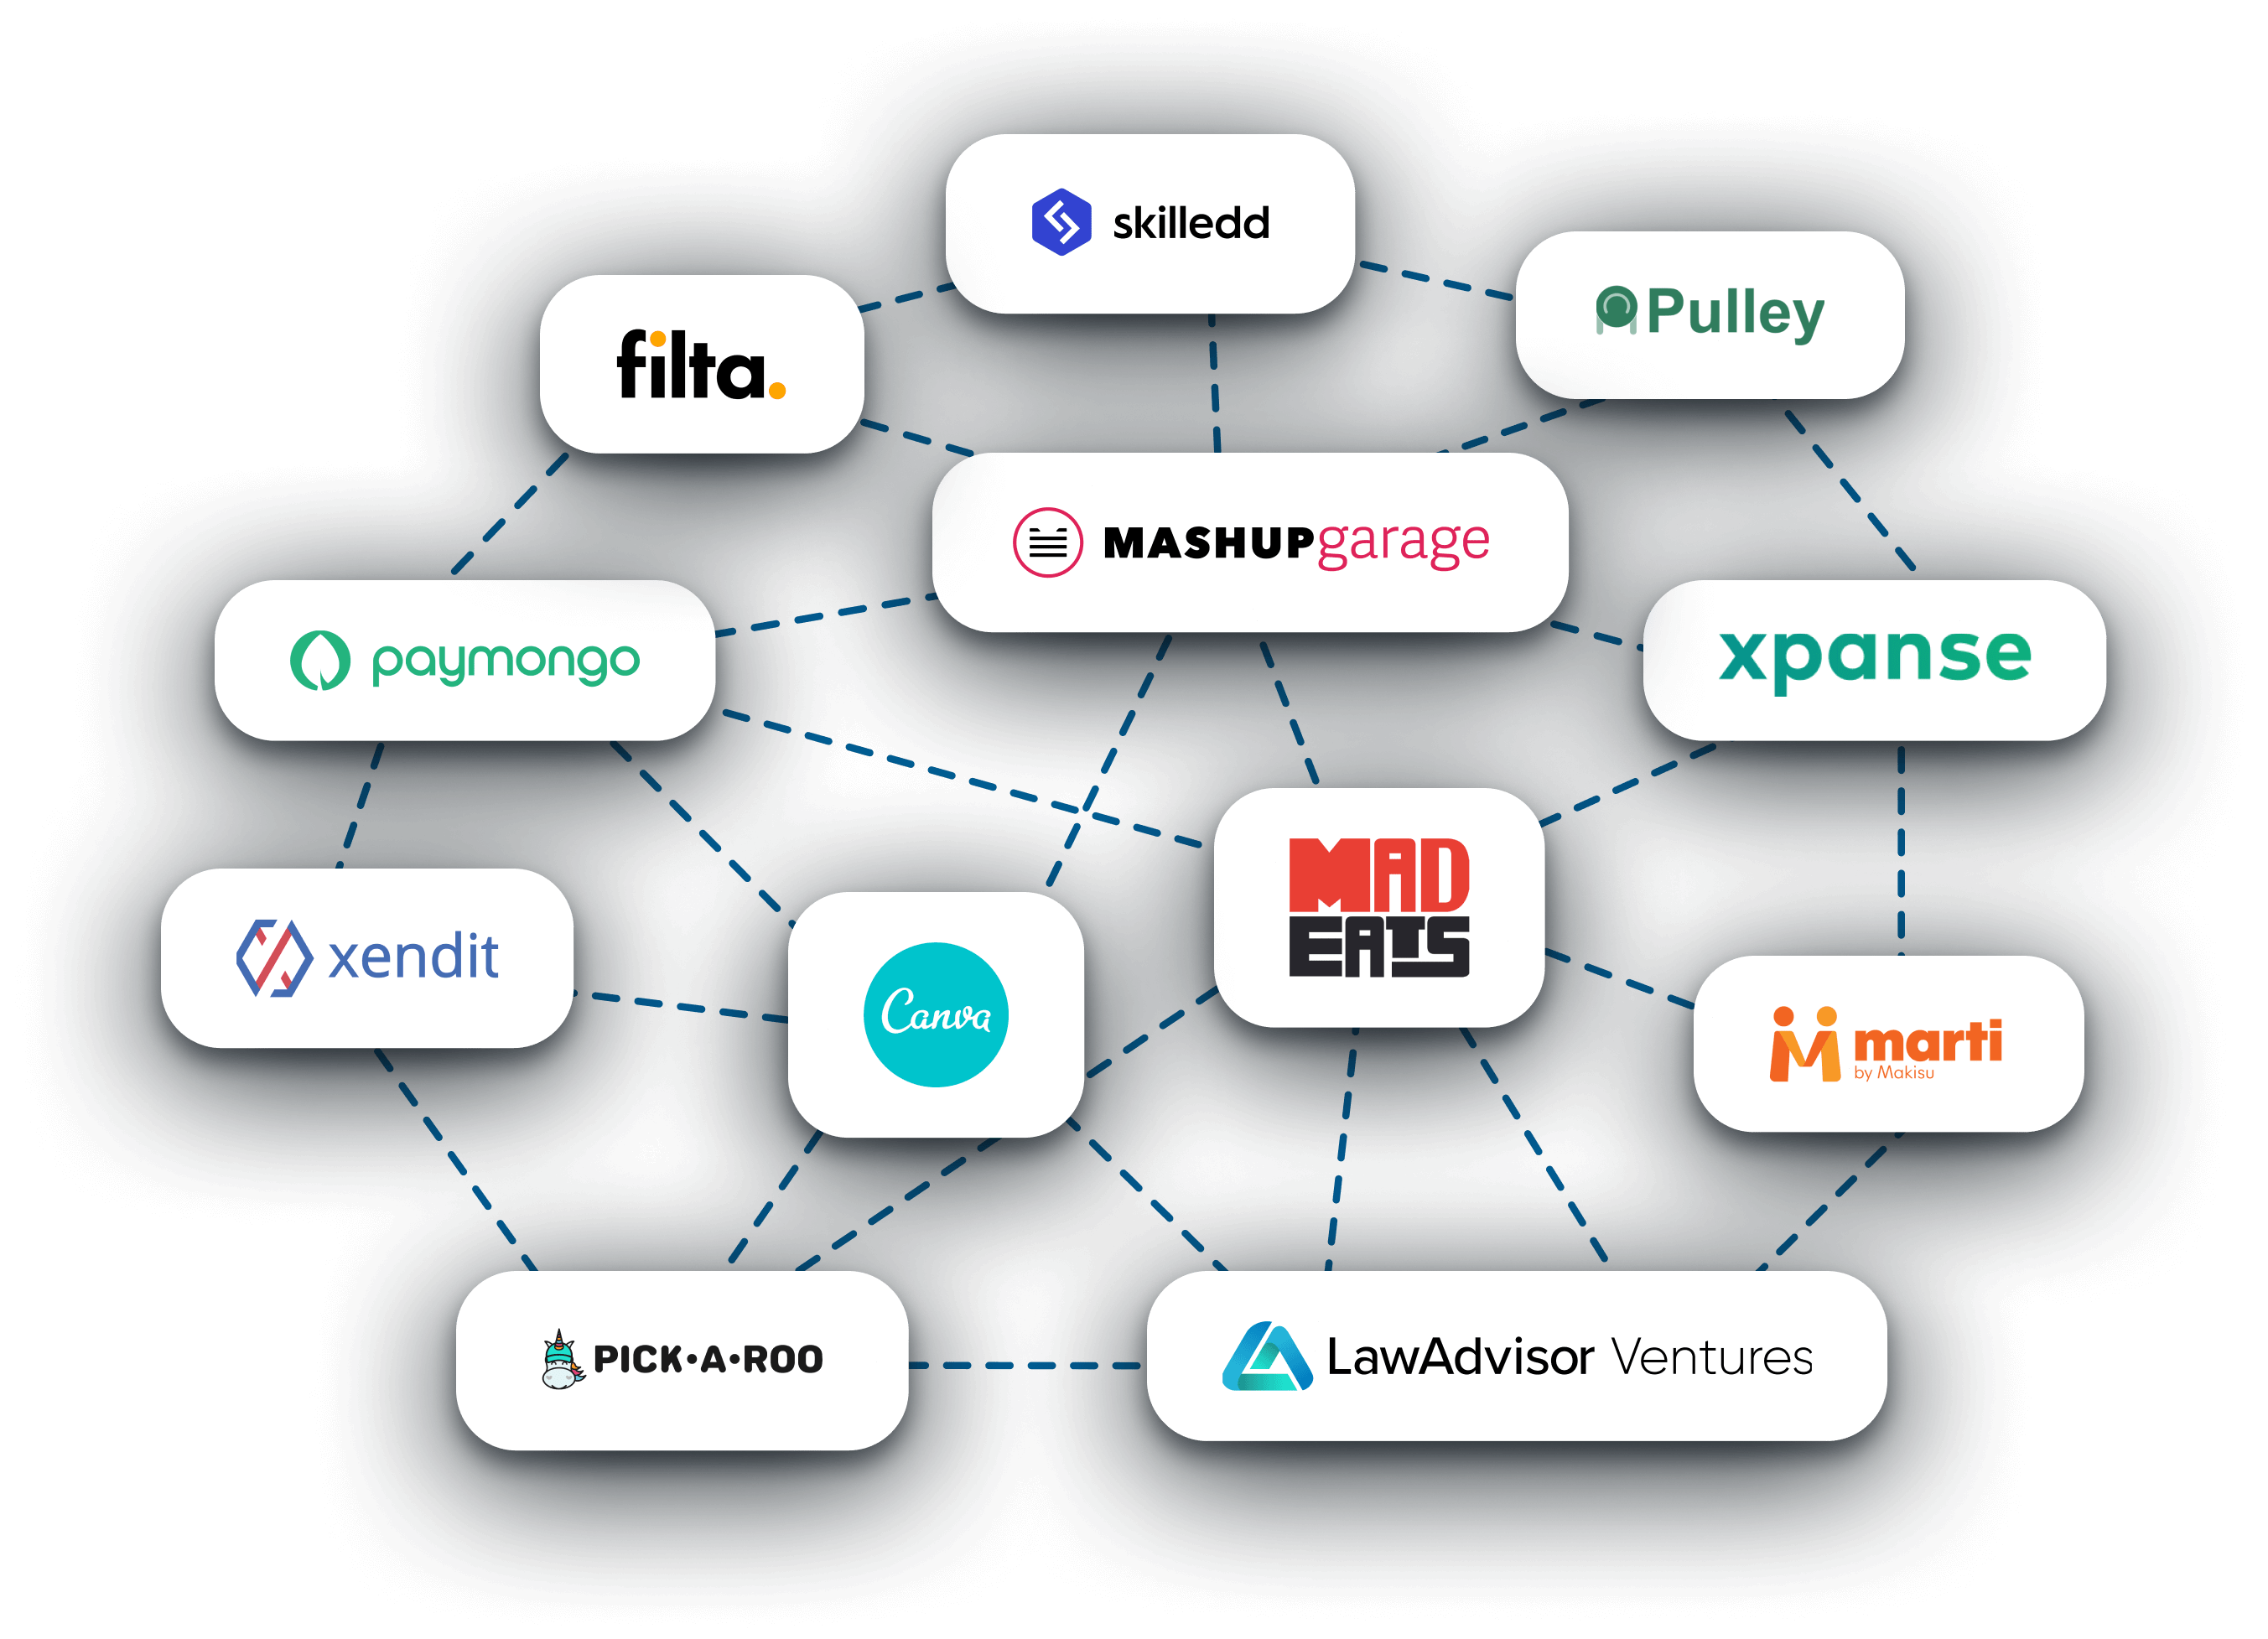 A network of partner companies